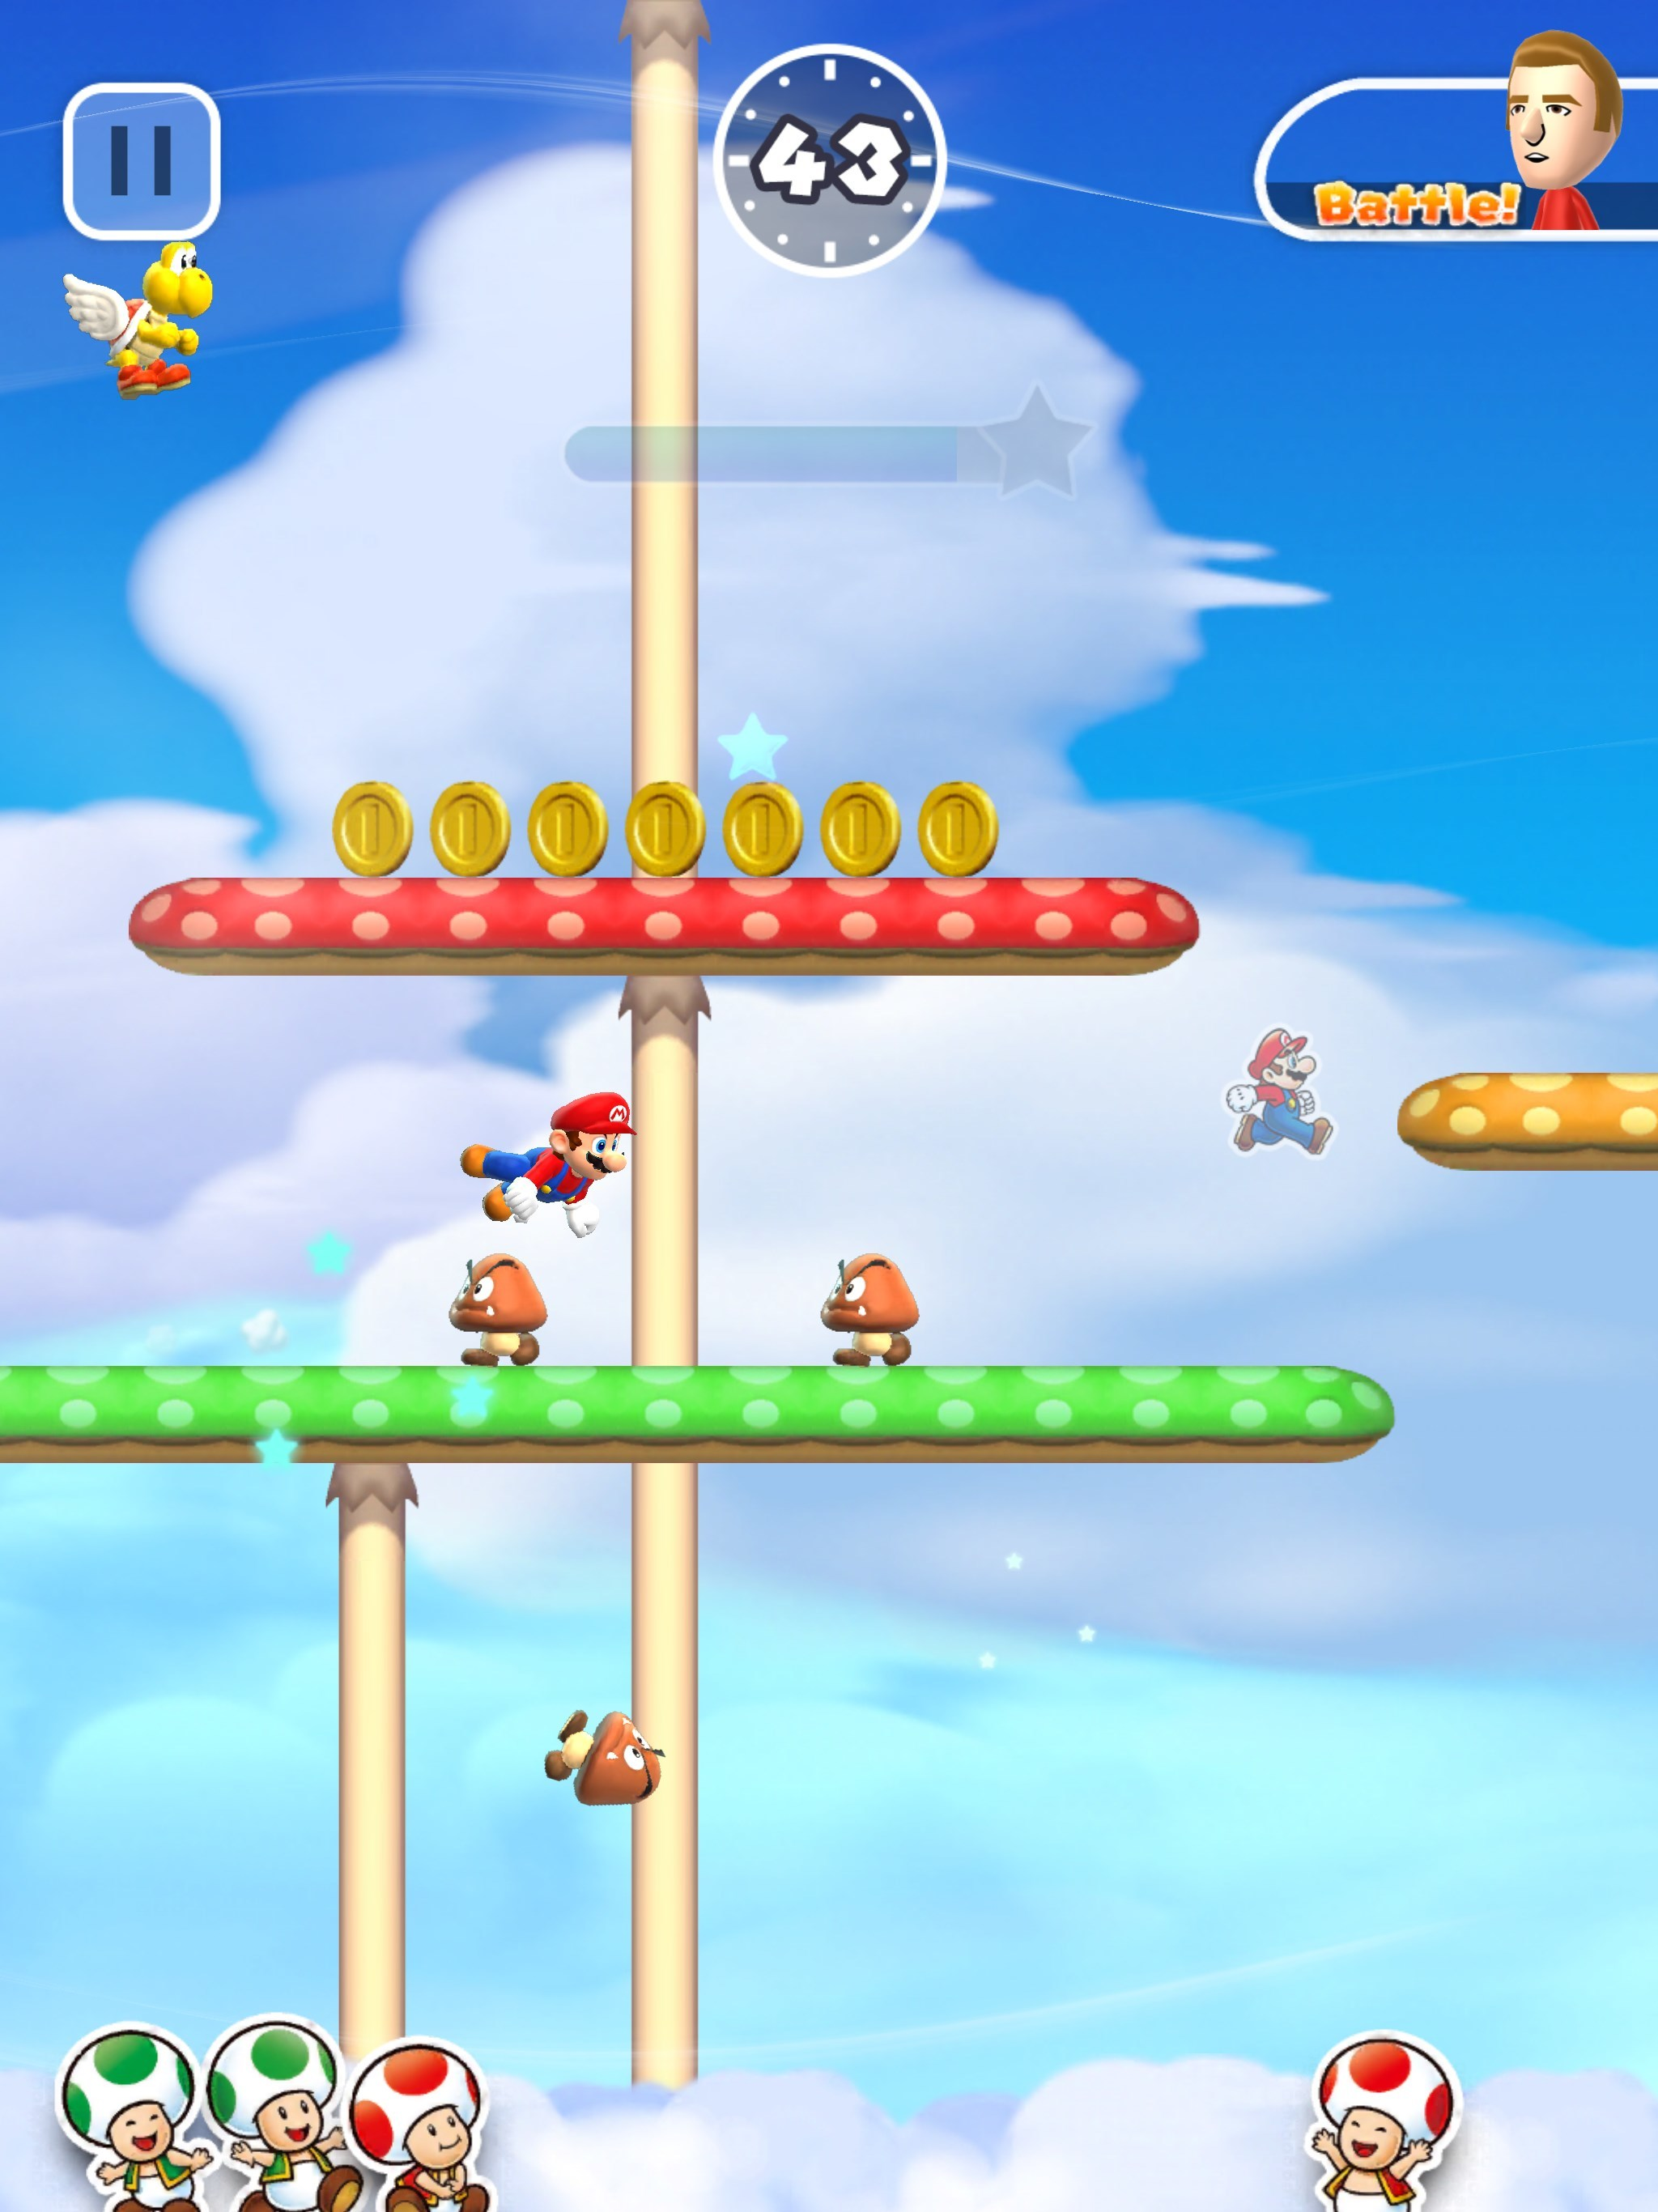 Toad Rally is a menace.